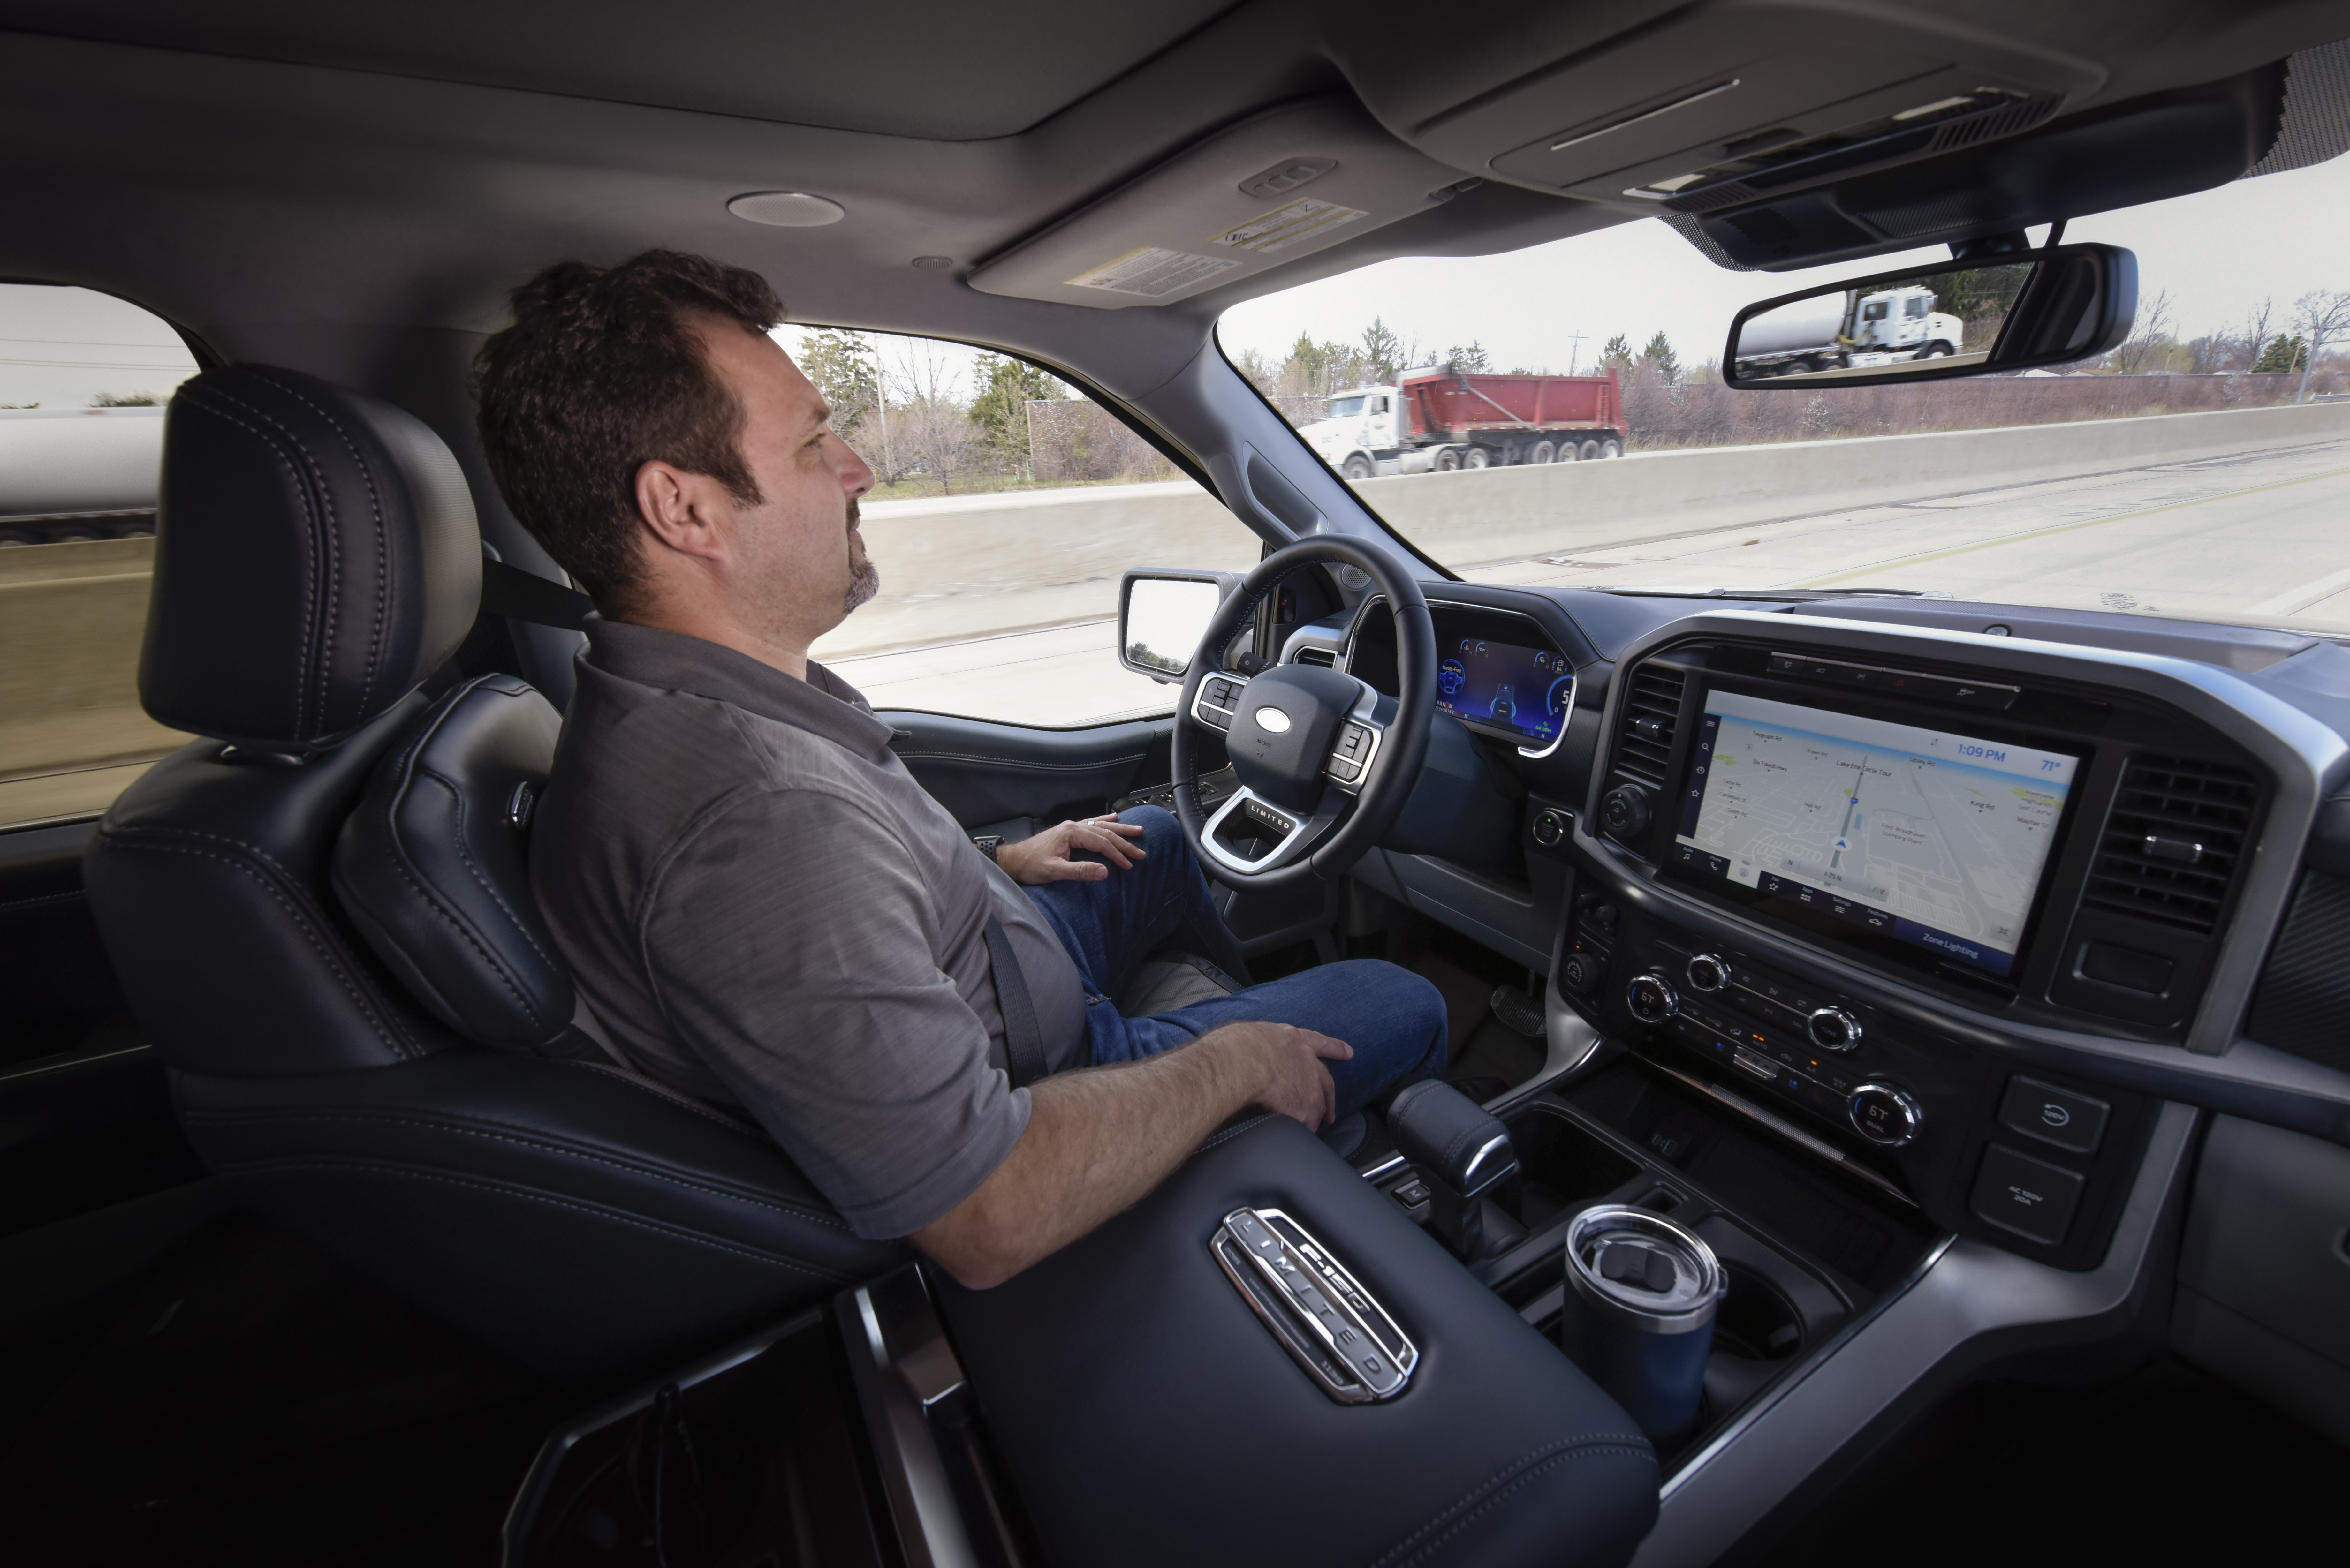 Ford will begin offering its new BlueCruise hands-free highway driving system to customers later this year after 500,000 miles of development testing and fine-tuning the technology on a journey across the United States and Canada. F-150 pictured.